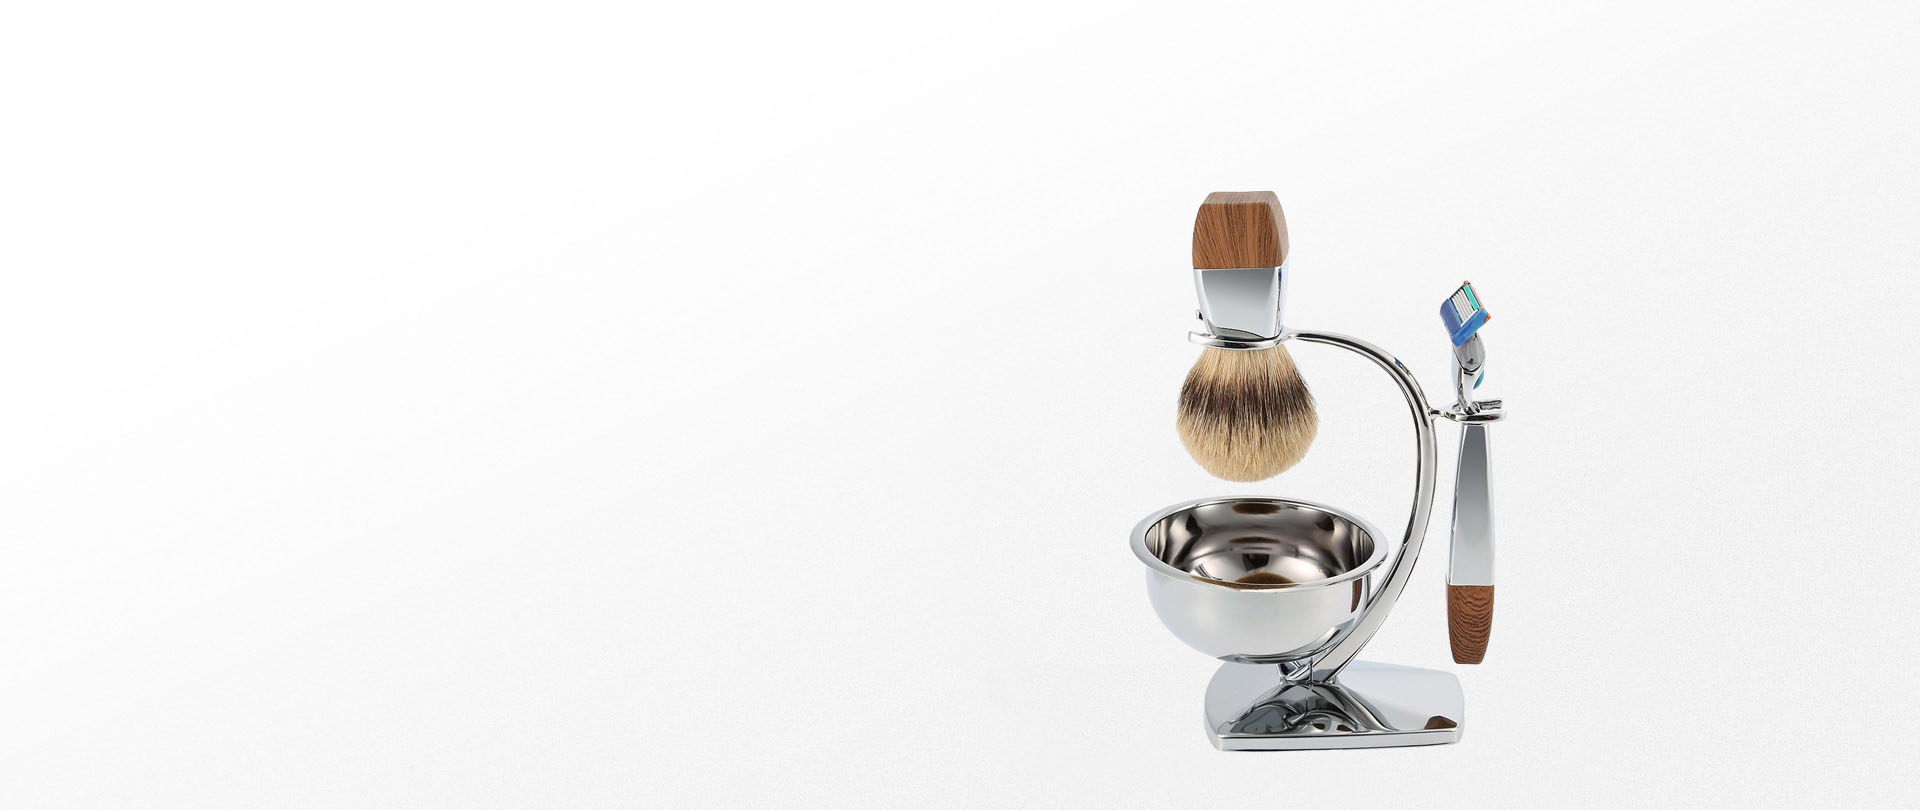 Shaving brushes. Wet shaving need!